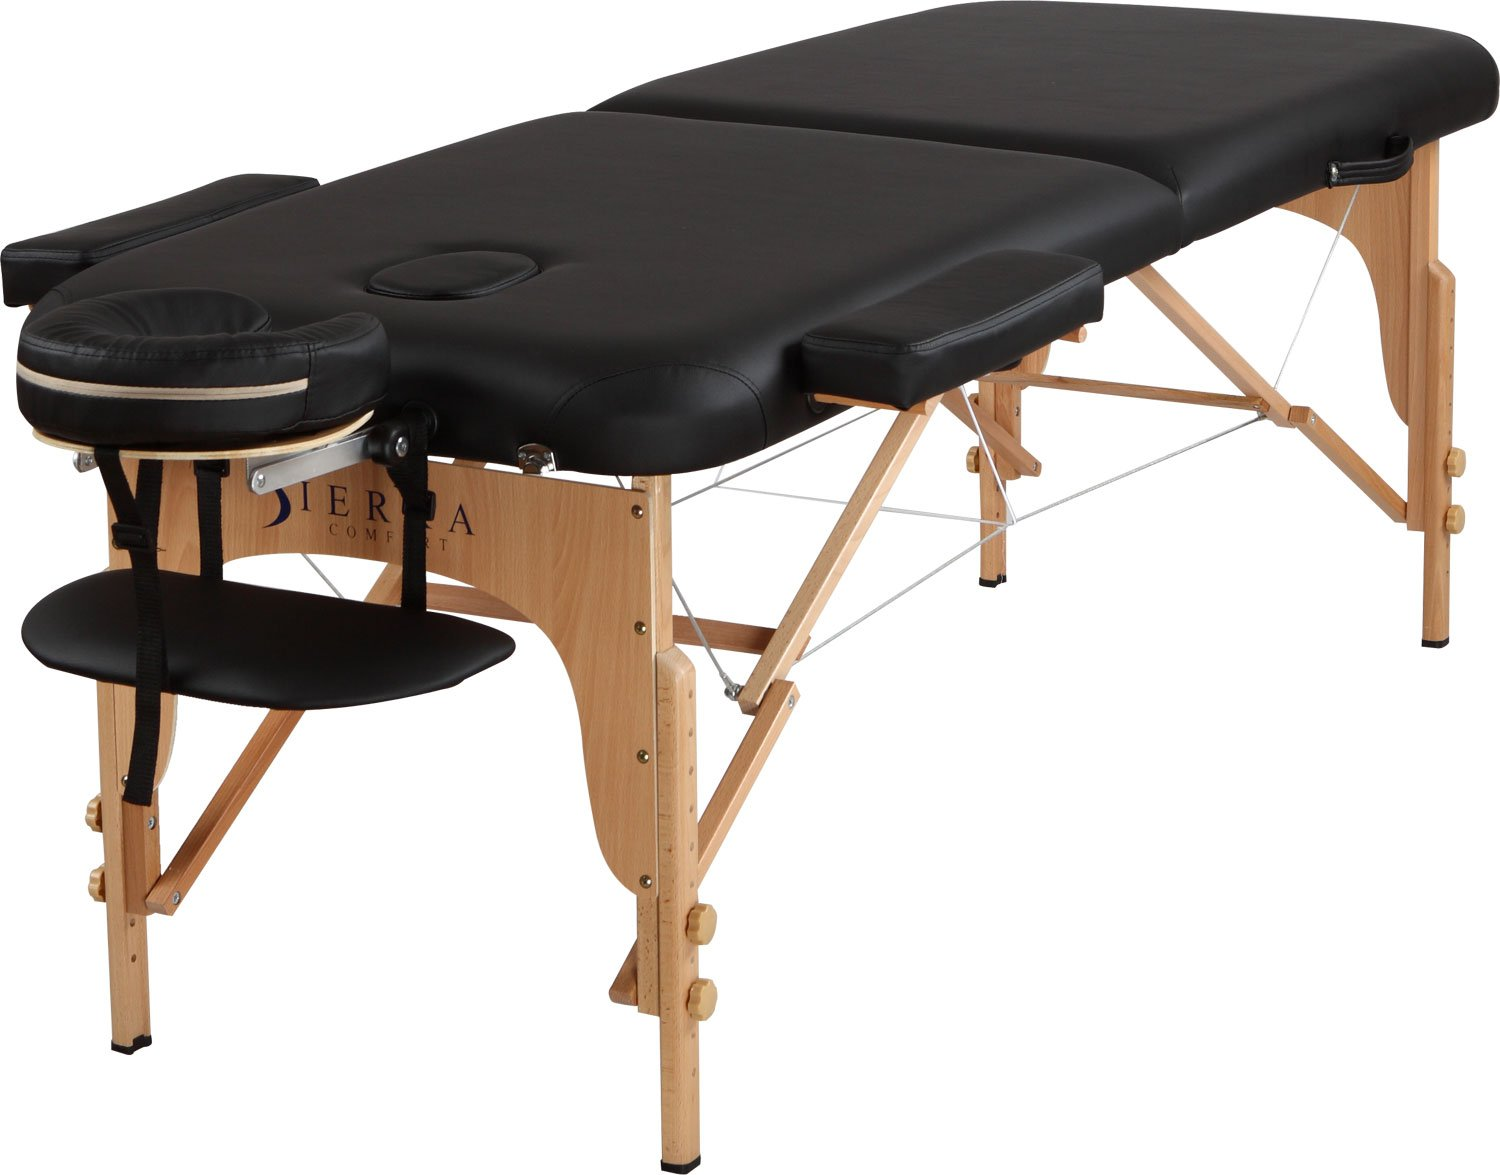 Sierra Comfort All-Inclusive Portable Massage Table by SierraComfort (Image #3)